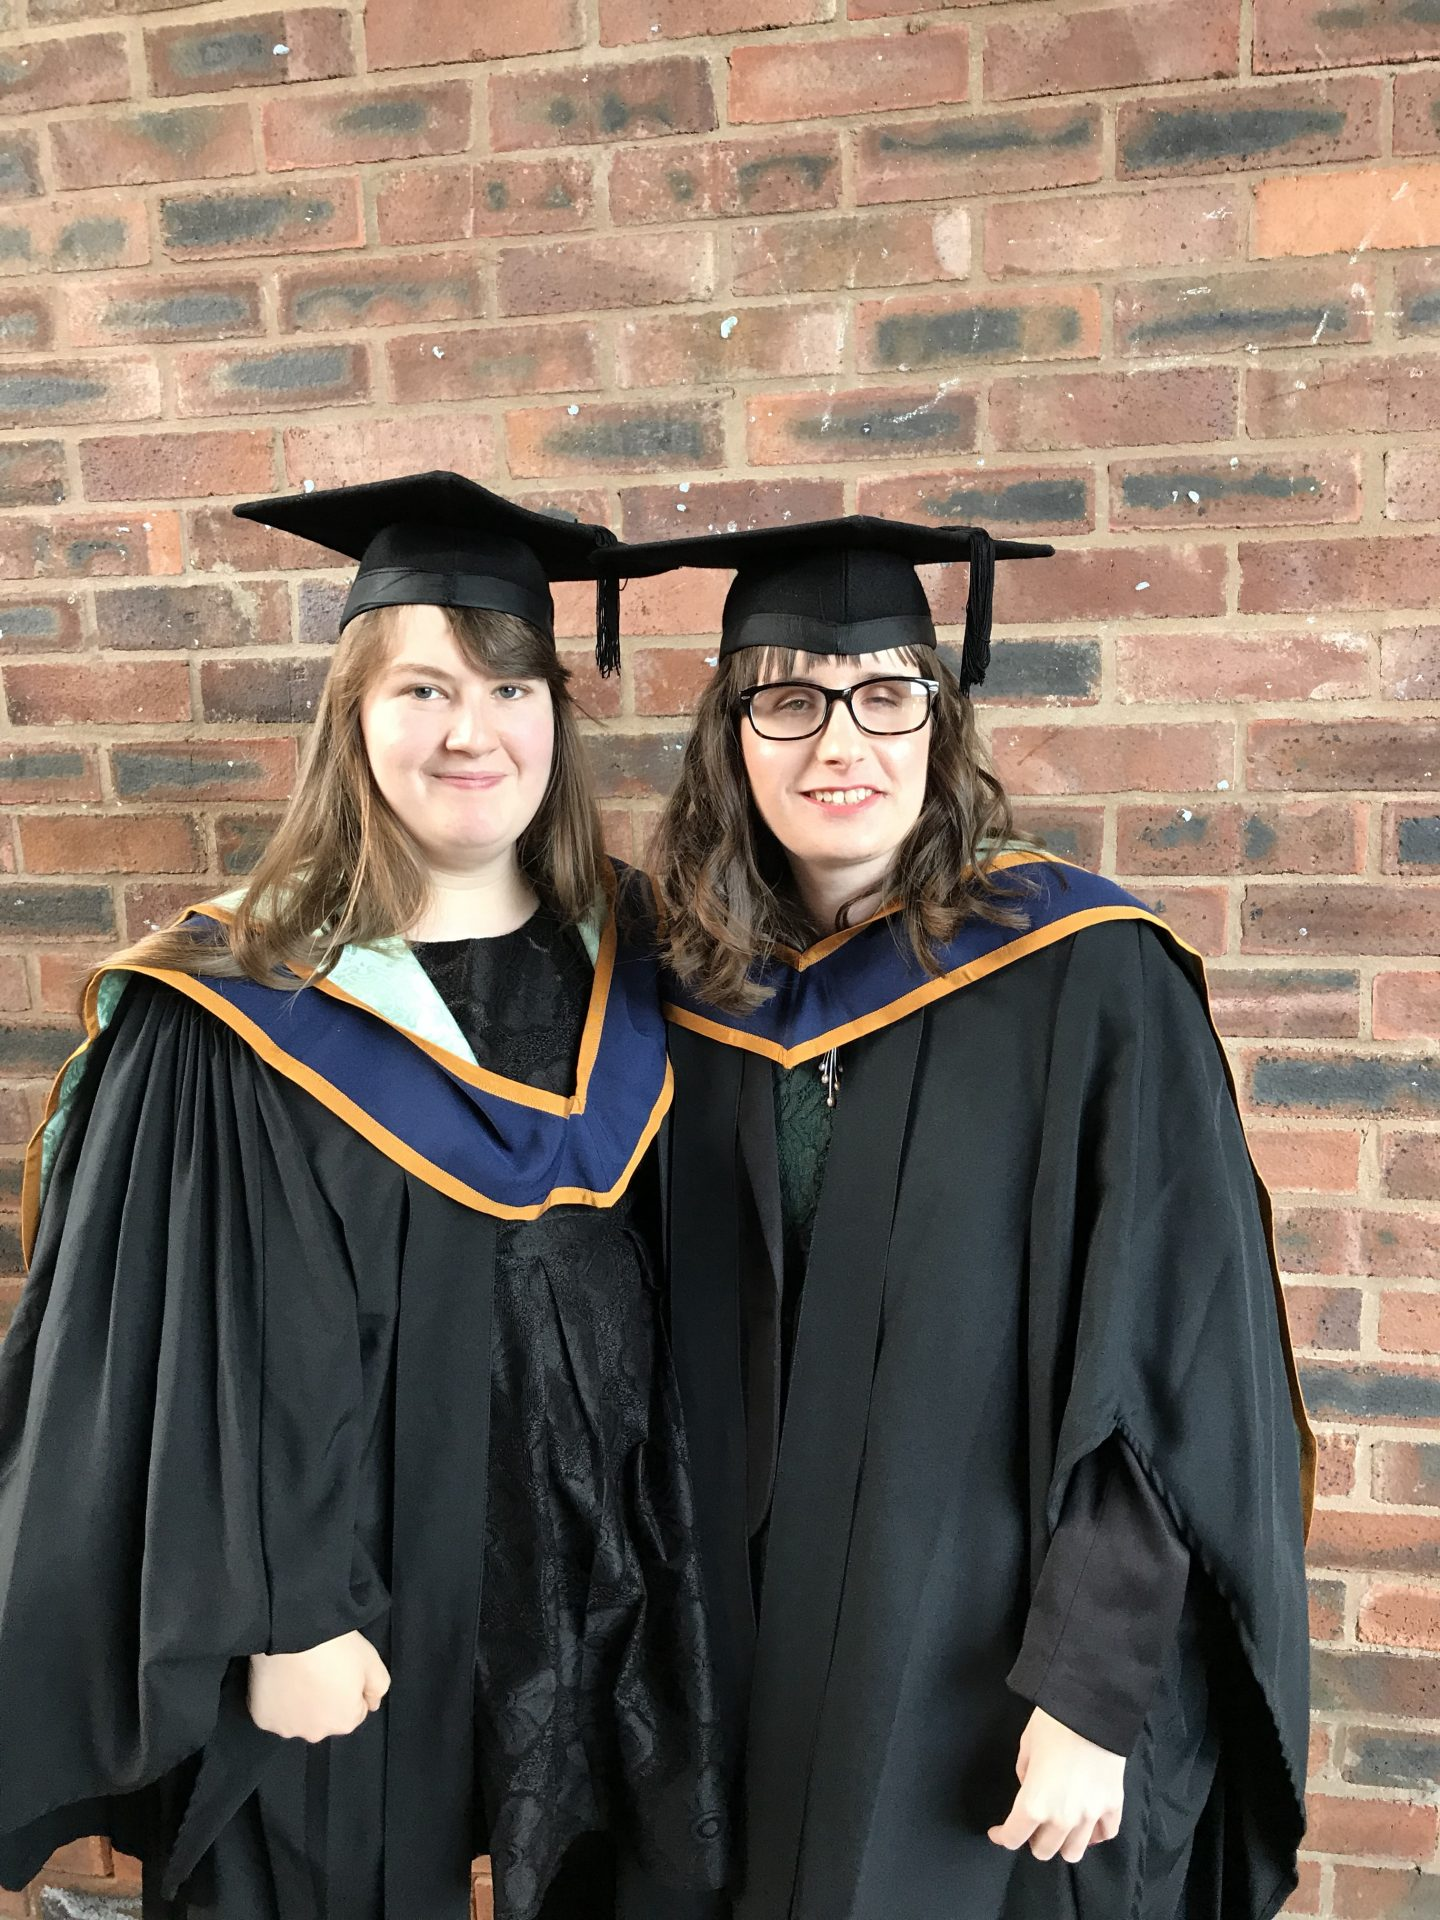 Holly and her friend in graduation out fits at York St John University